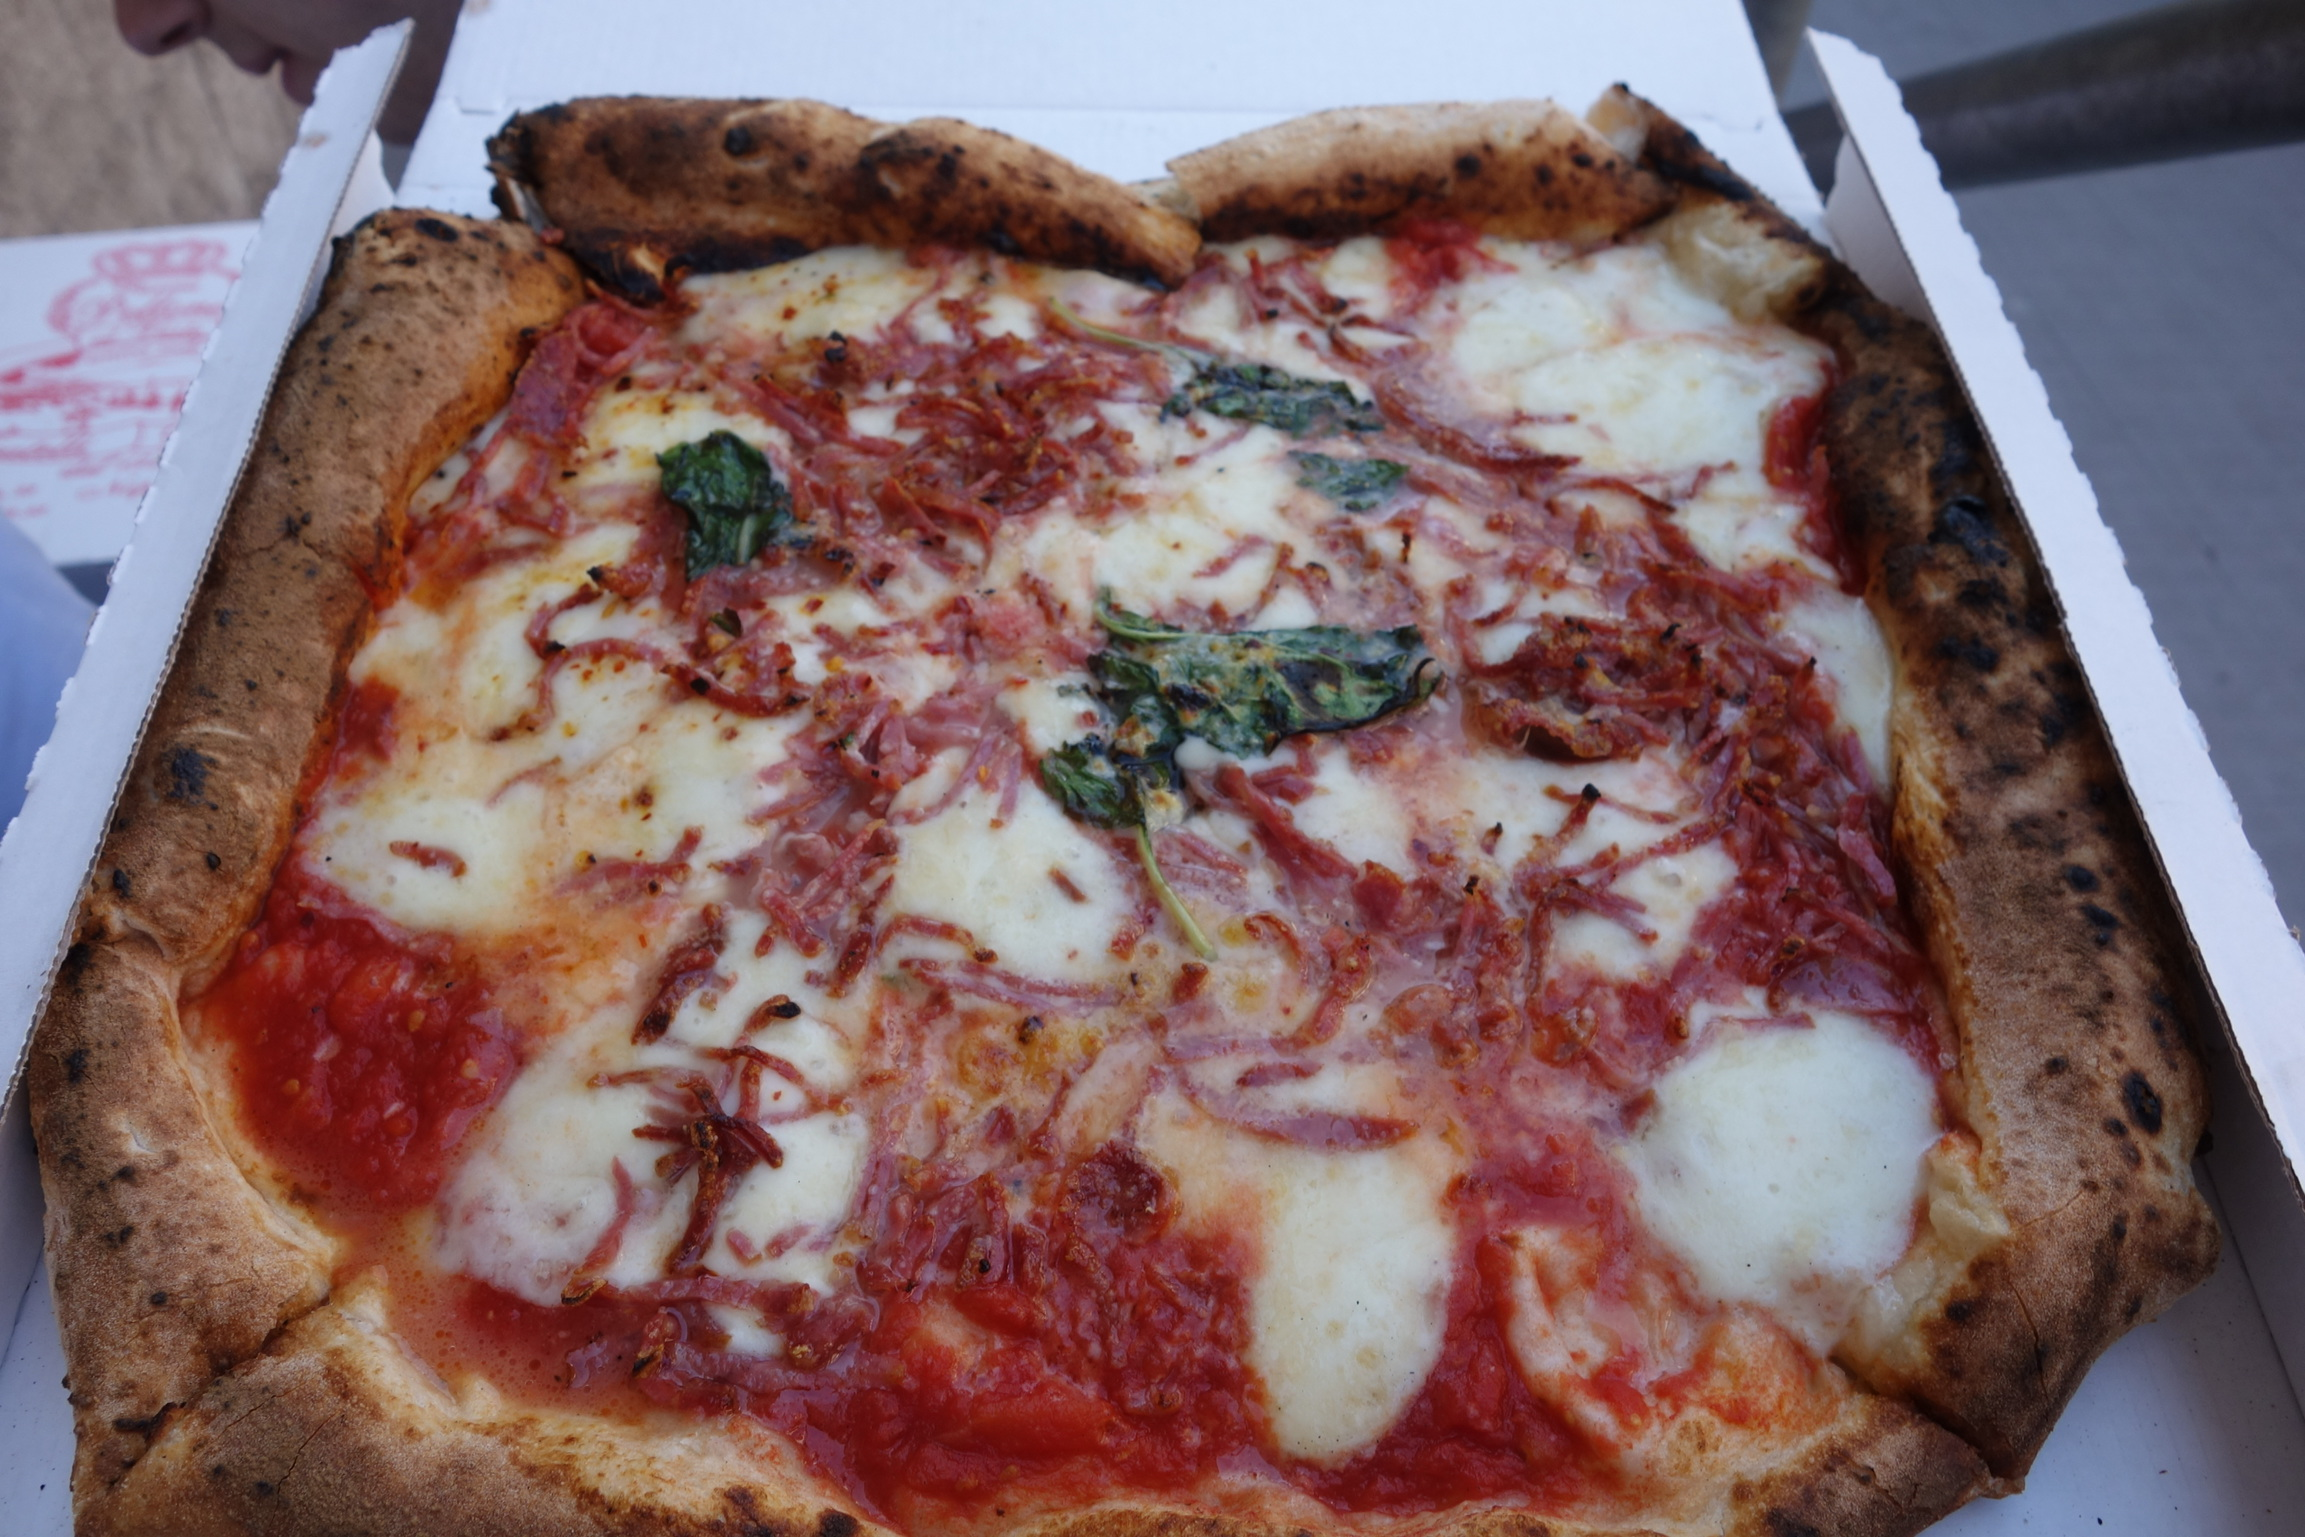 Napoli pizza - pizza doesn't get any better than this